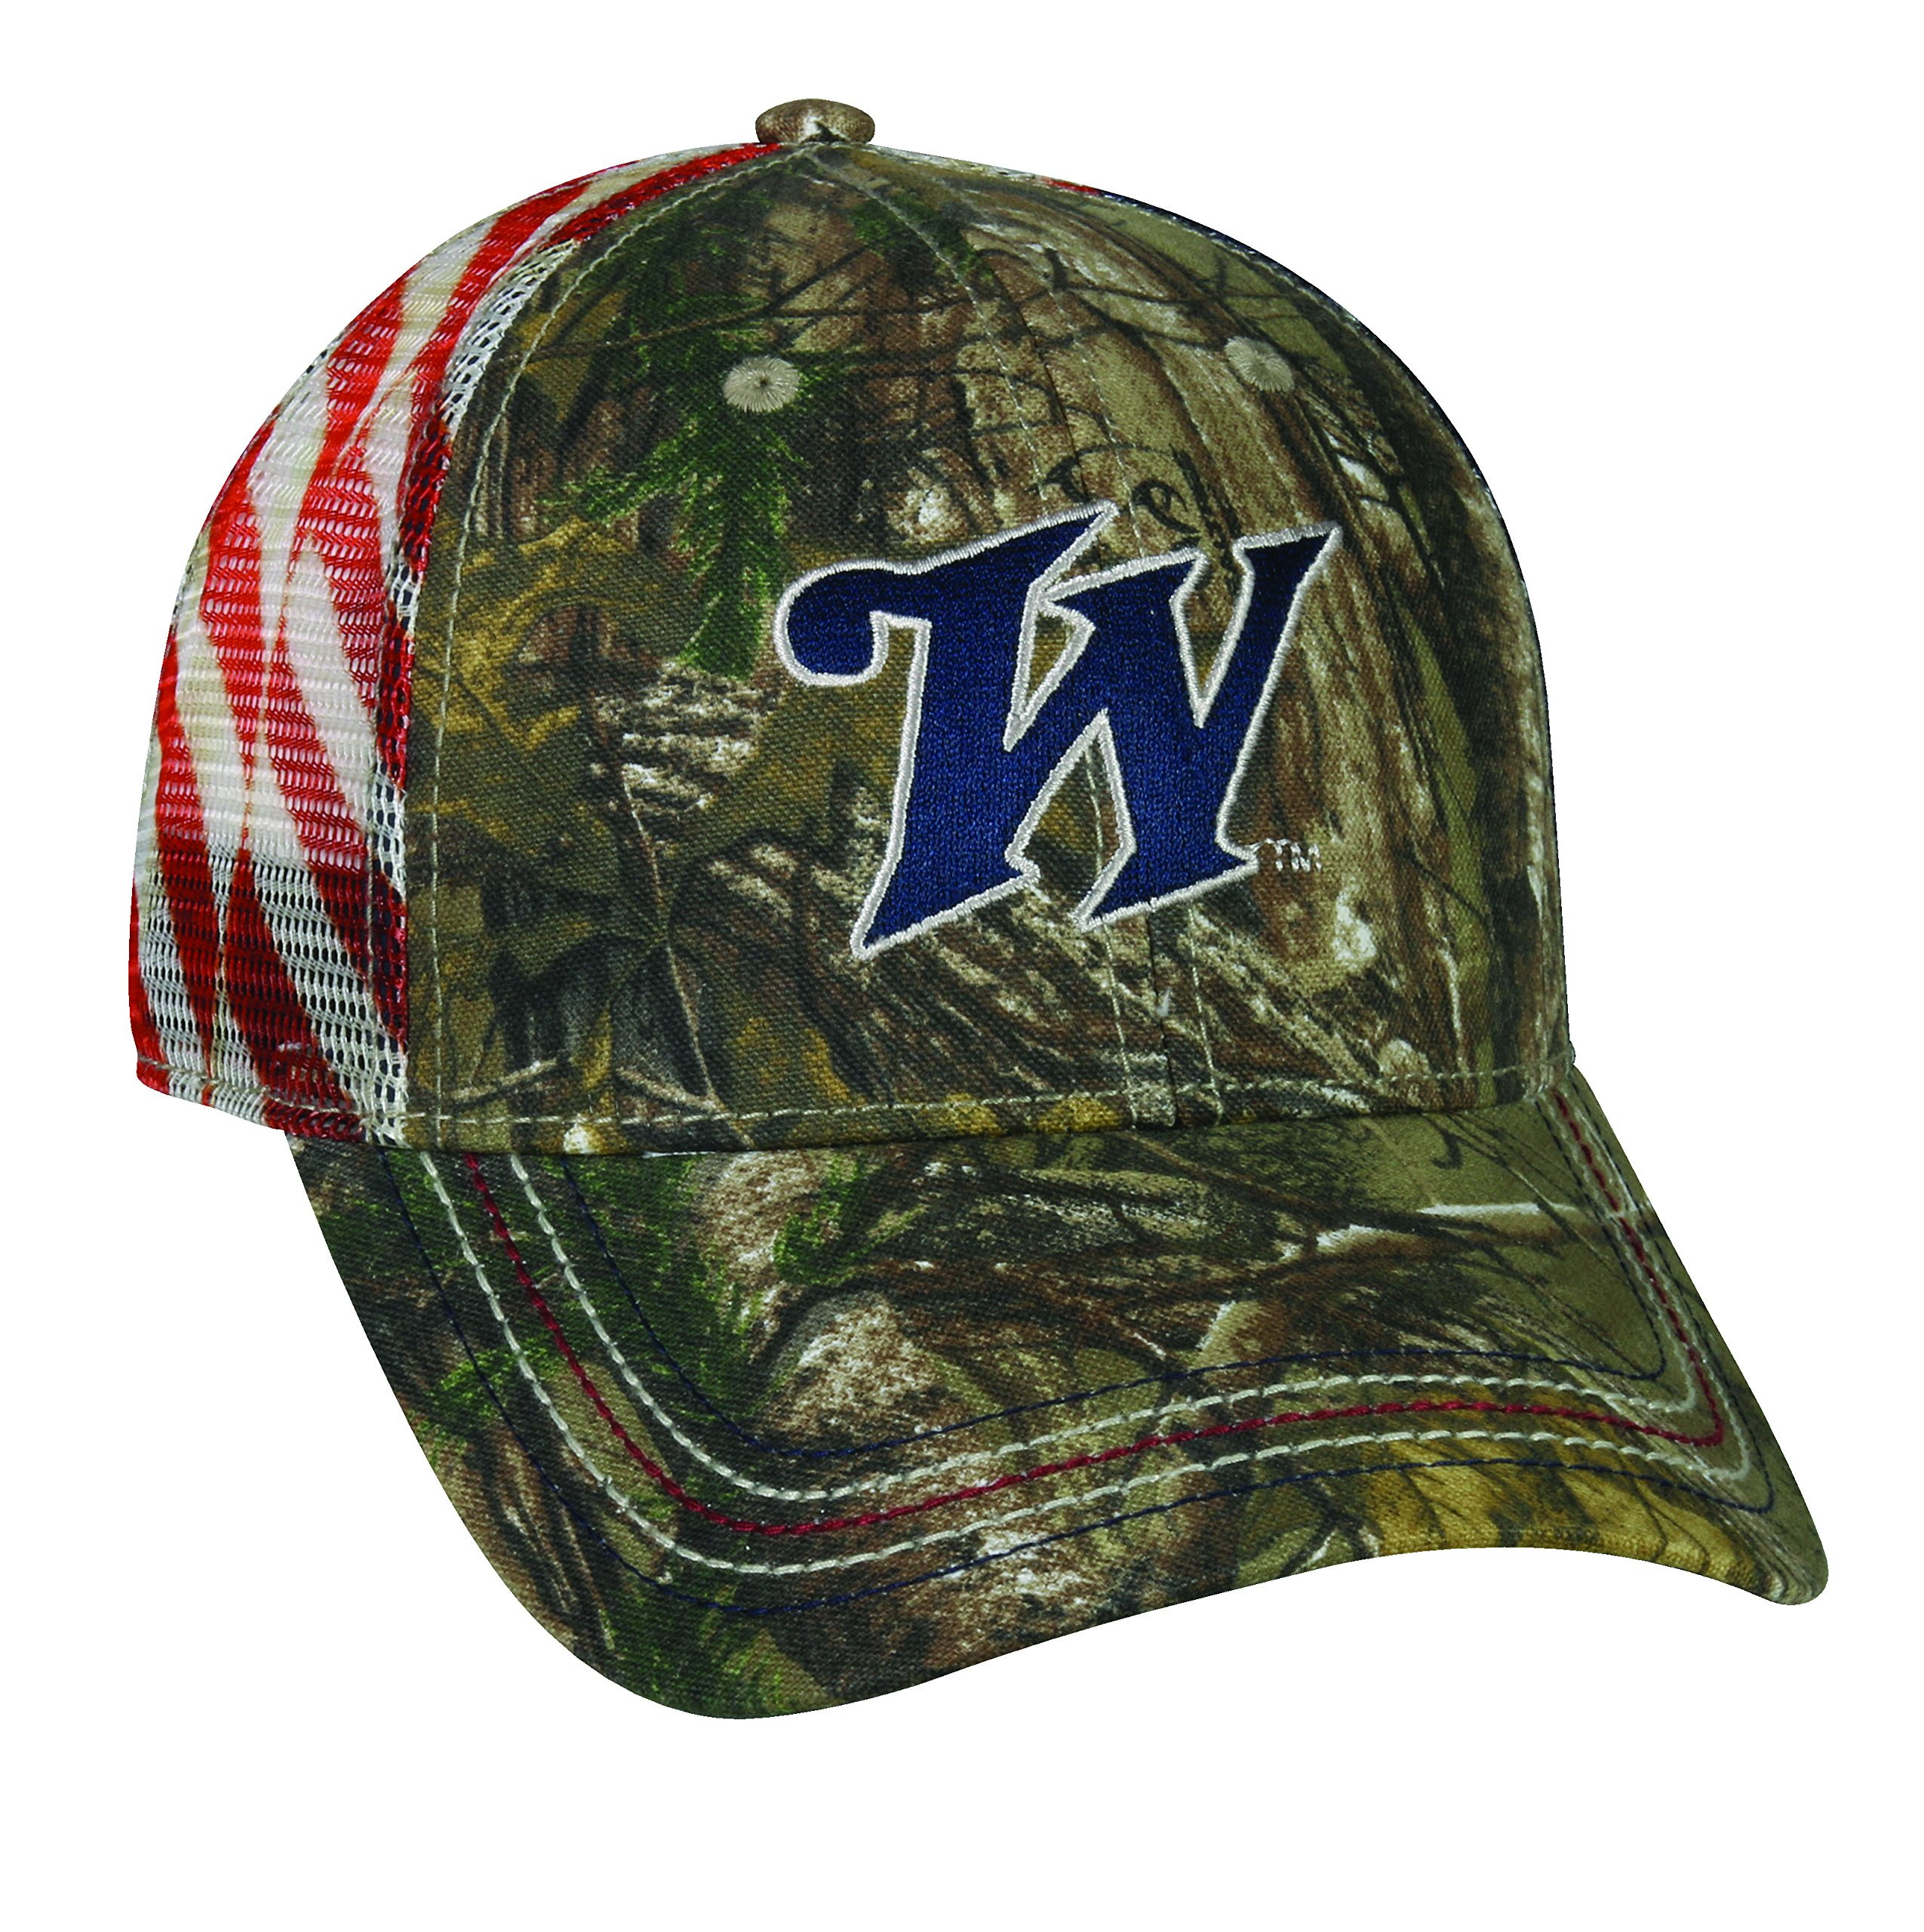 Winchester Adjustable Closure Americana Mesh Back Cap, Realtree Xtra Camo